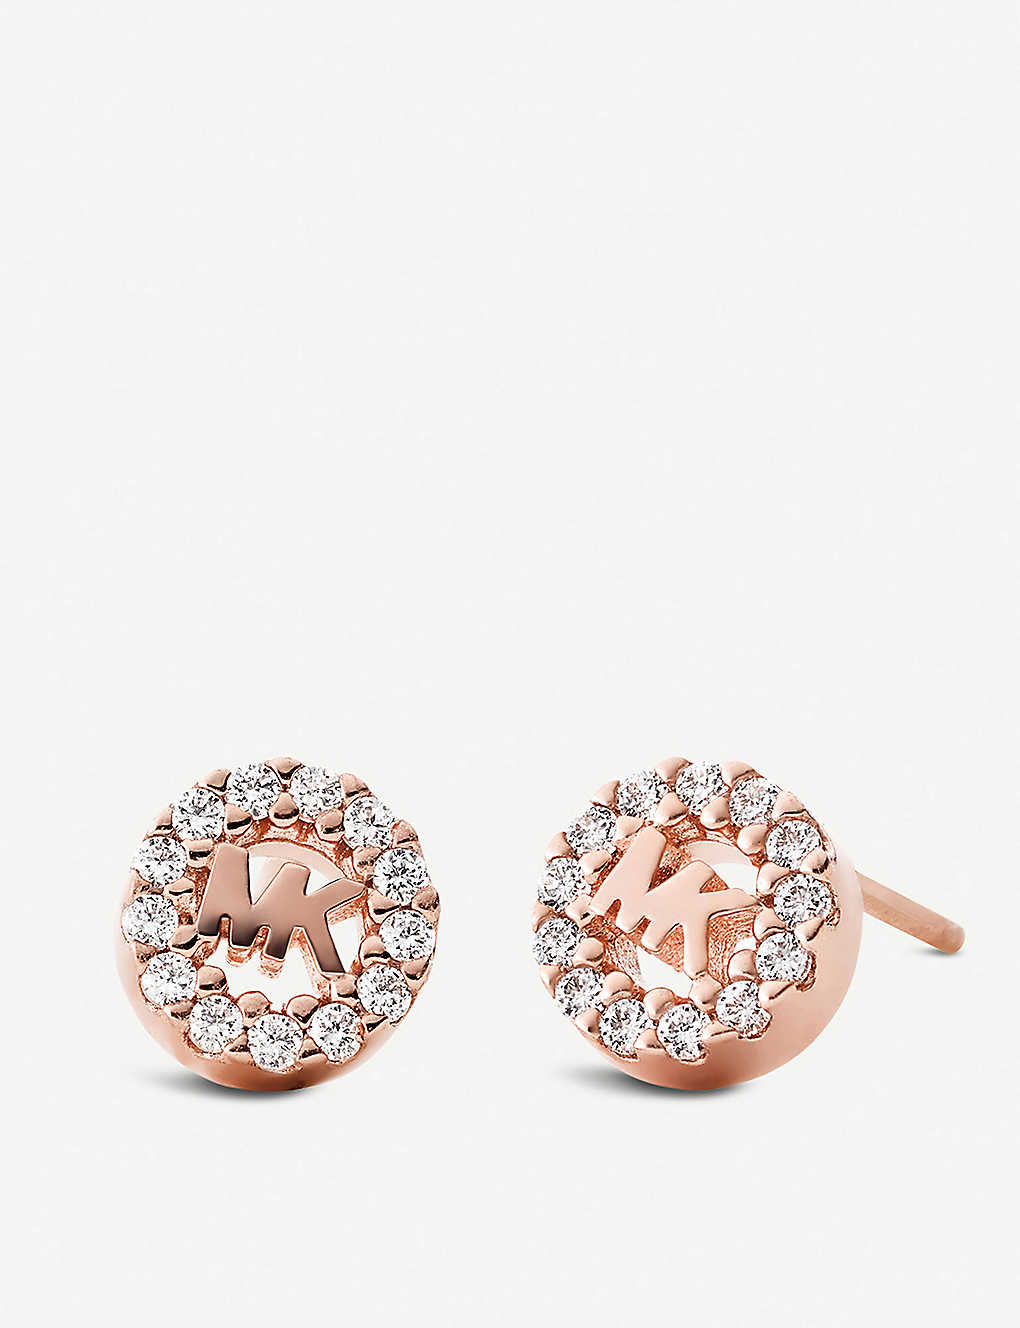 98ee077b9b5bab MICHAEL KORS Round monogram rose gold-plated and pave embellishment stud  earrings